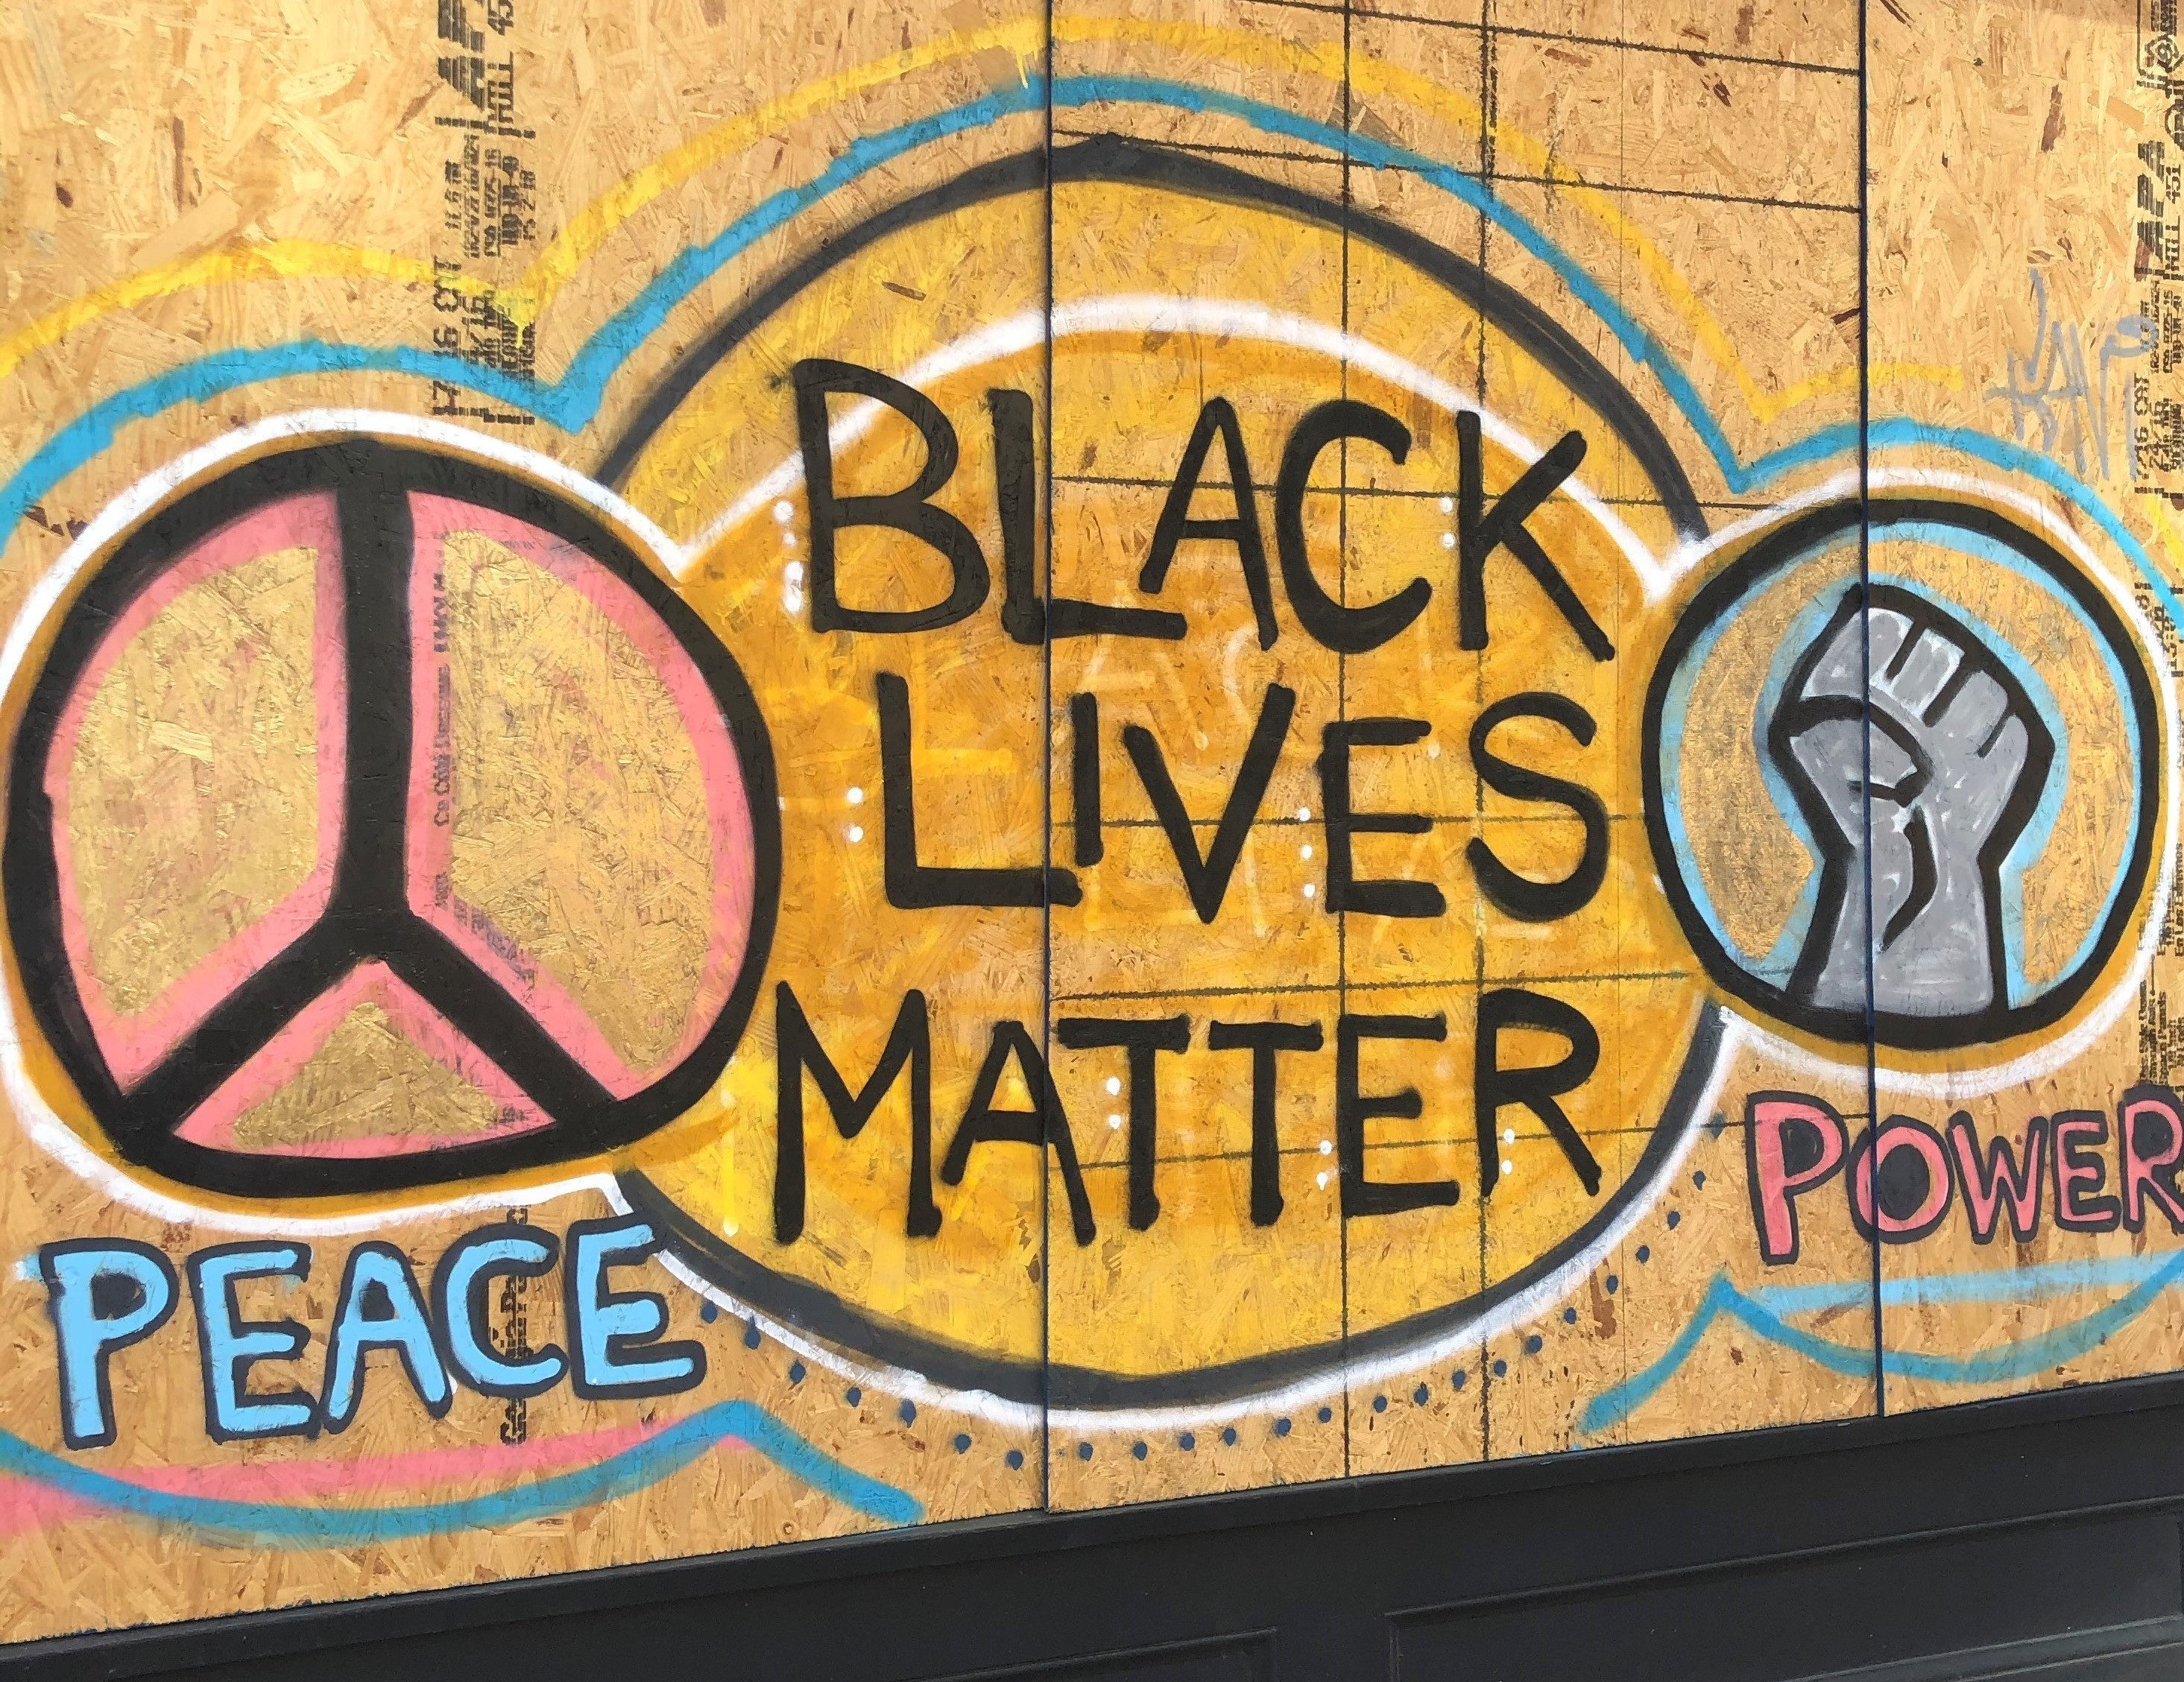 A sign painted on plywood that says Peace, Black Lives Matter, and Power, with peace and power fist symbols.